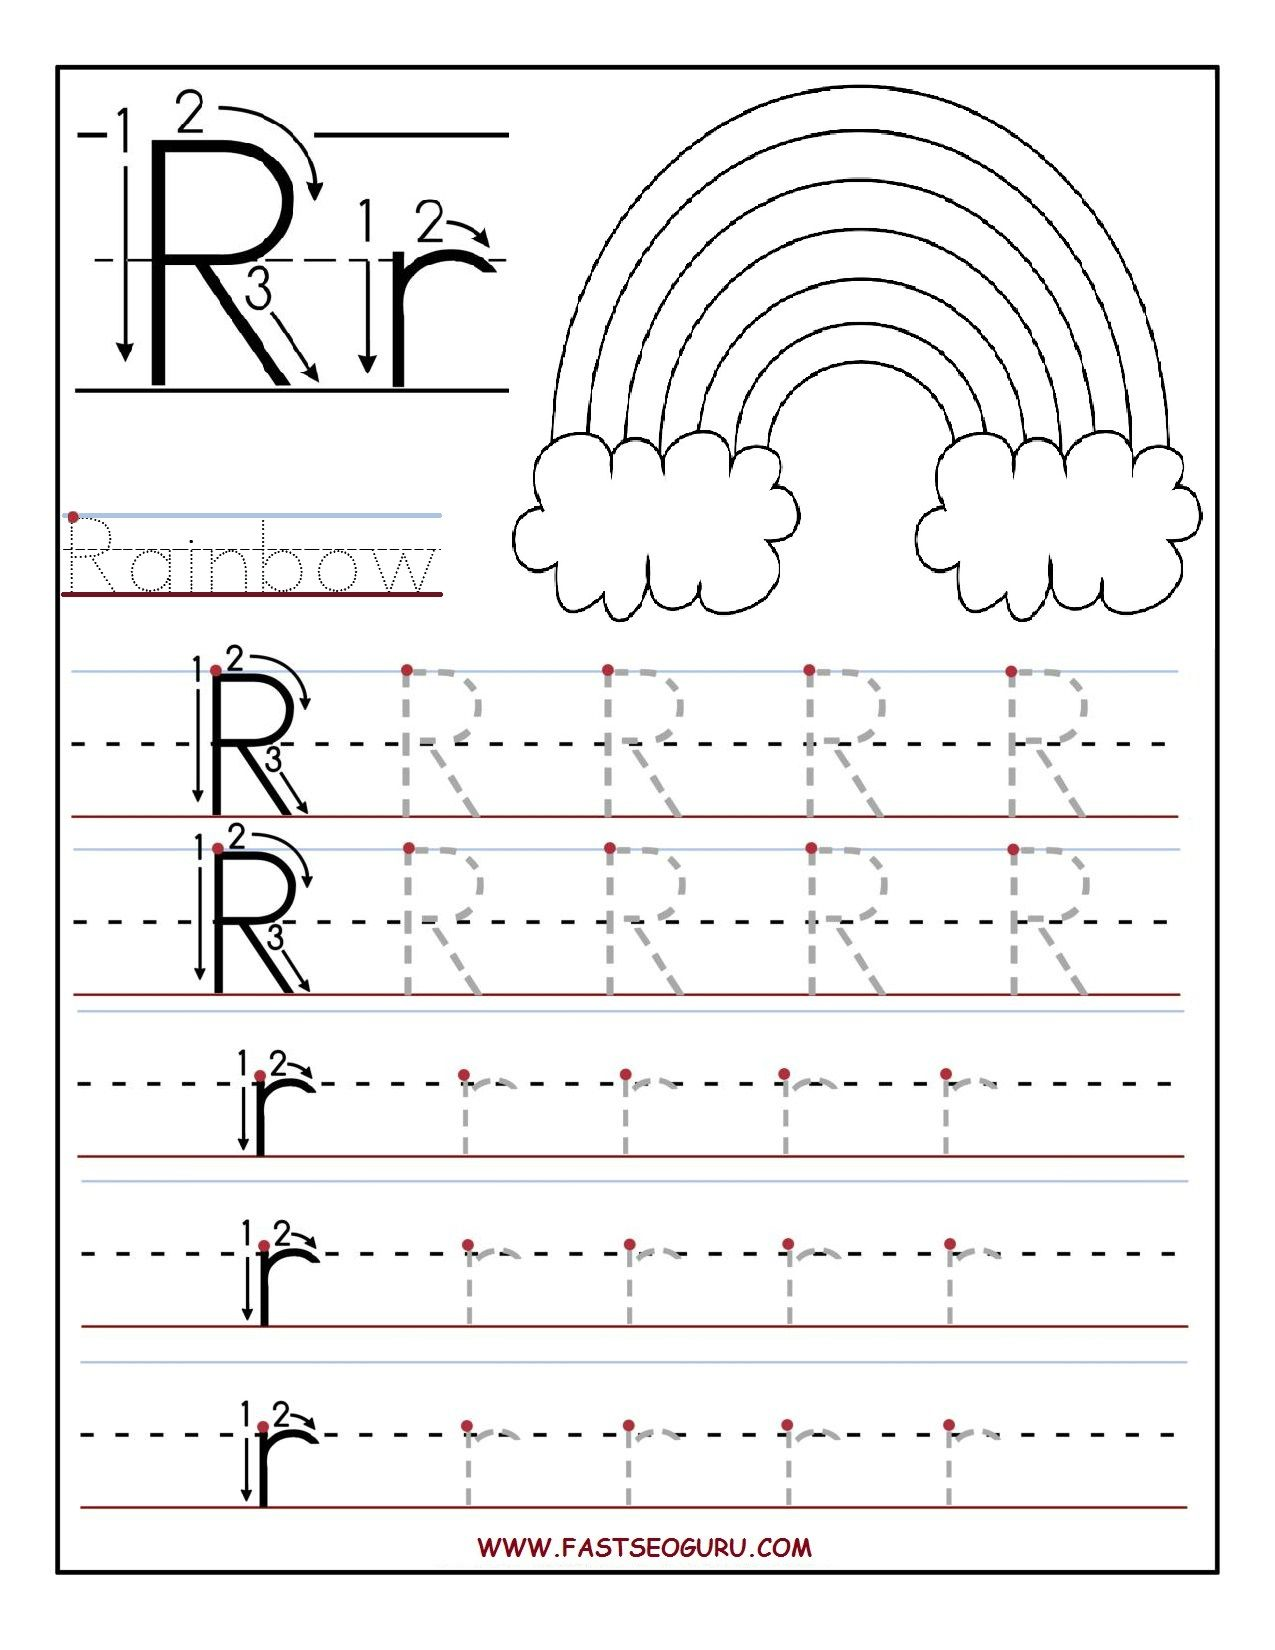 Printable letter R tracing worksheets for preschool | Summer ...